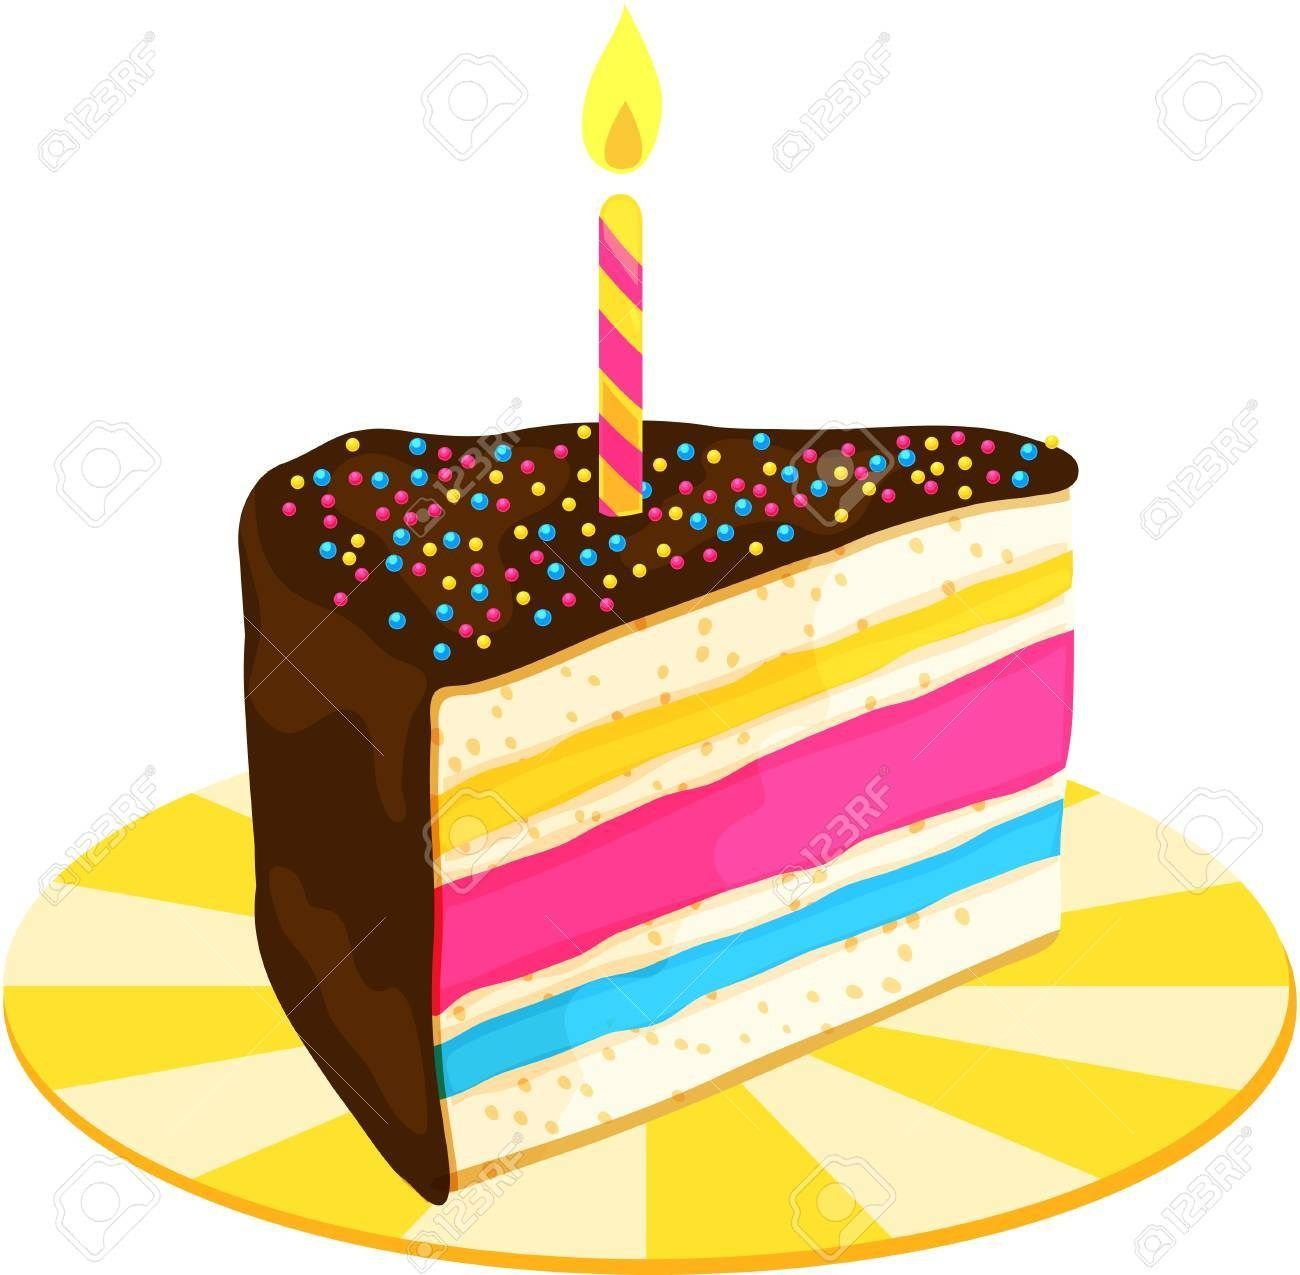 Strange 25 Creative Photo Of Free Pictures Of Birthday Cakes With Images Personalised Birthday Cards Paralily Jamesorg